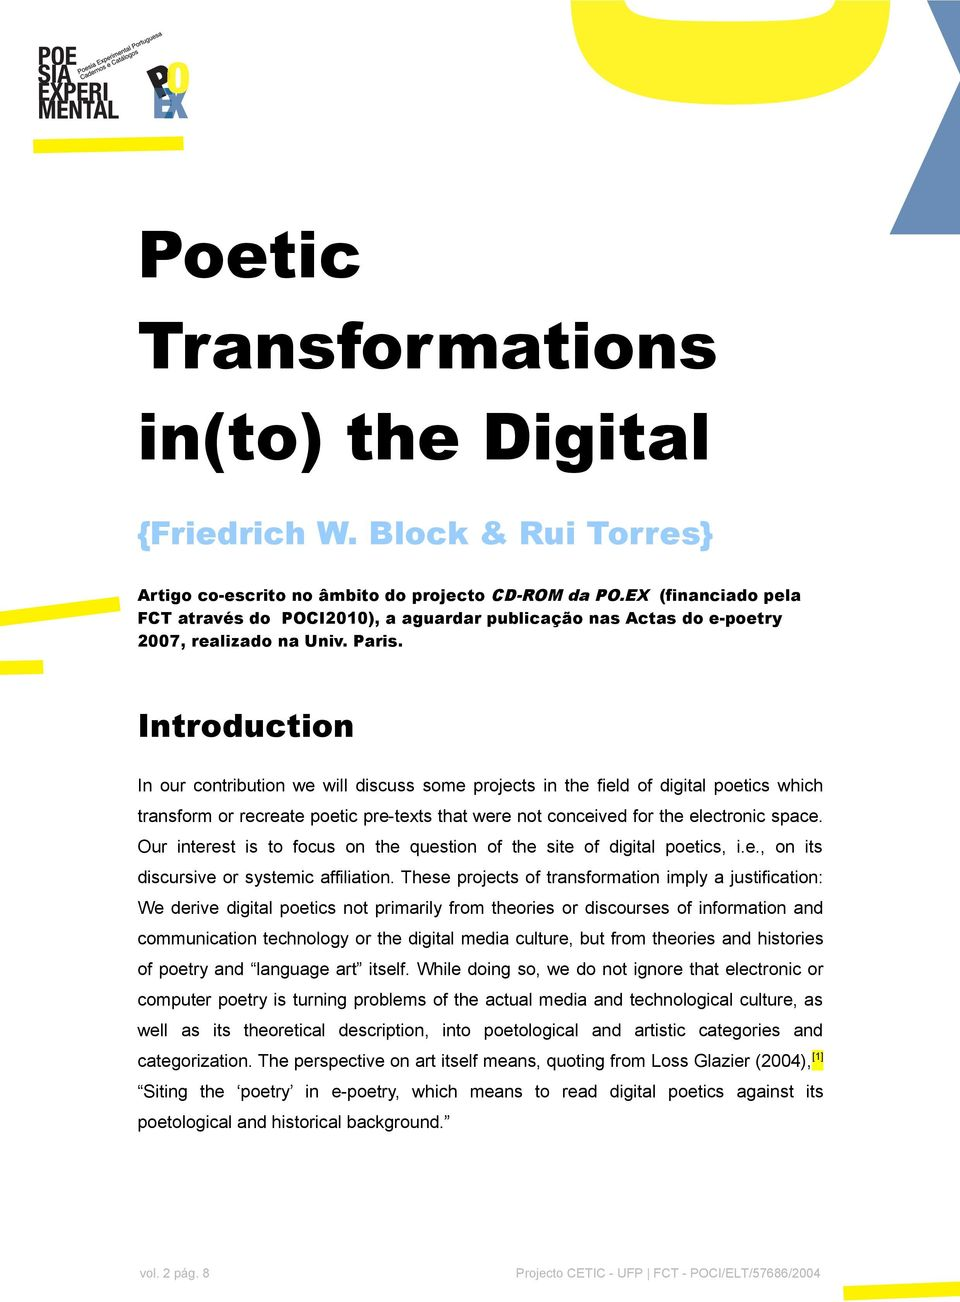 Introduction In our contribution we will discuss some projects in the field of digital poetics which transform or recreate poetic pre-texts that were not conceived for the electronic space.